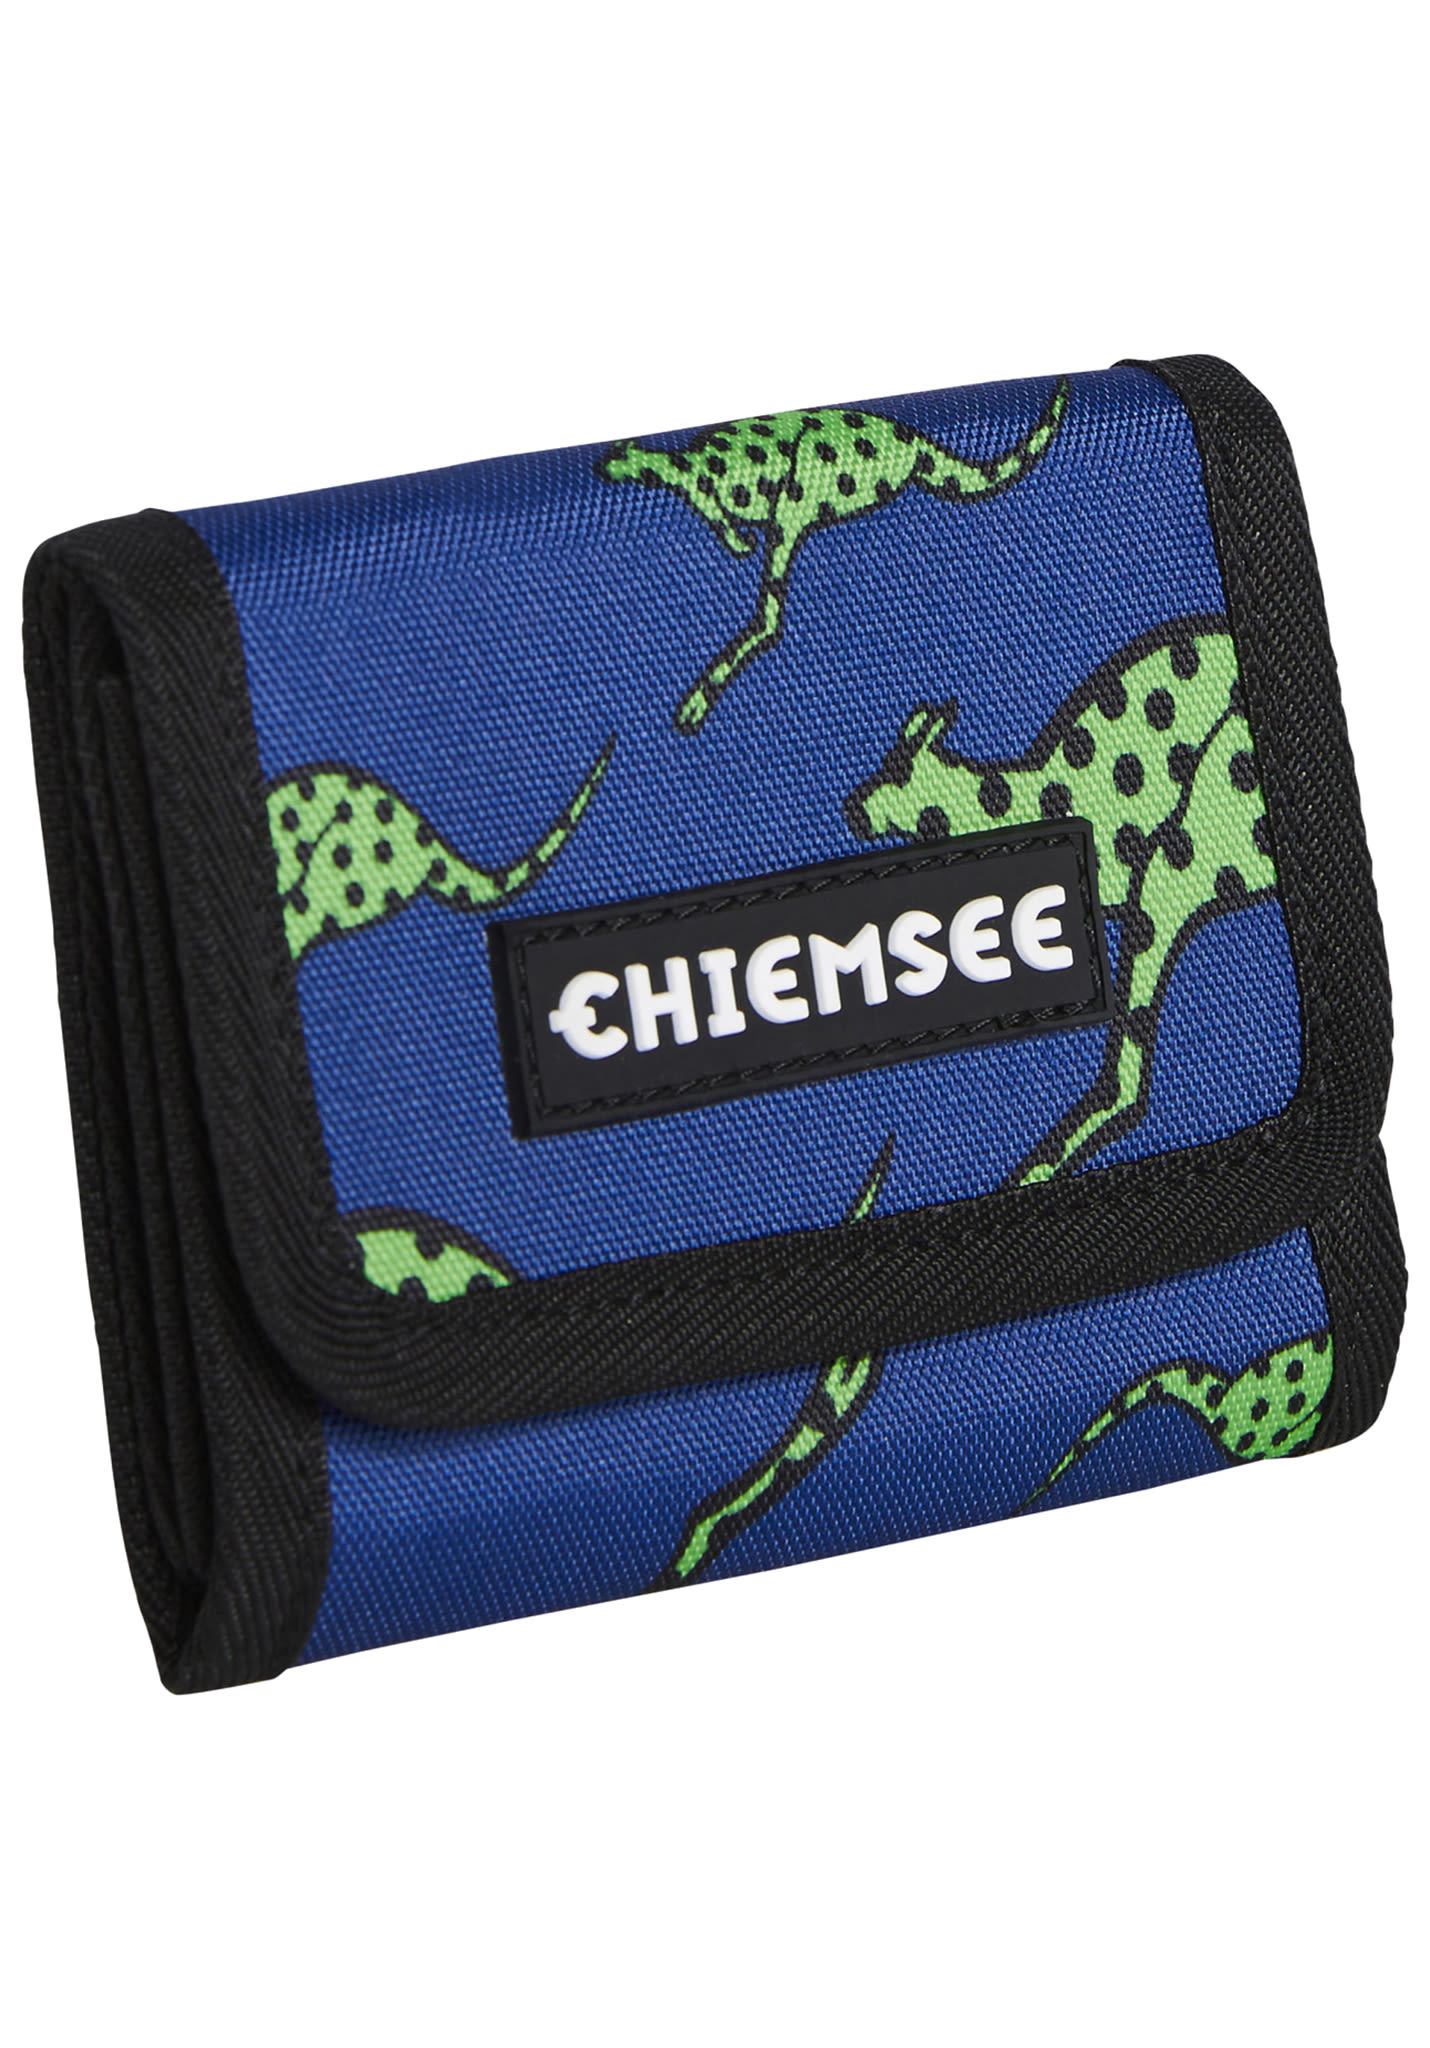 305bf84ee9345 Chiemsee Wallet - Geldbeutel - Blau - Planet Sports